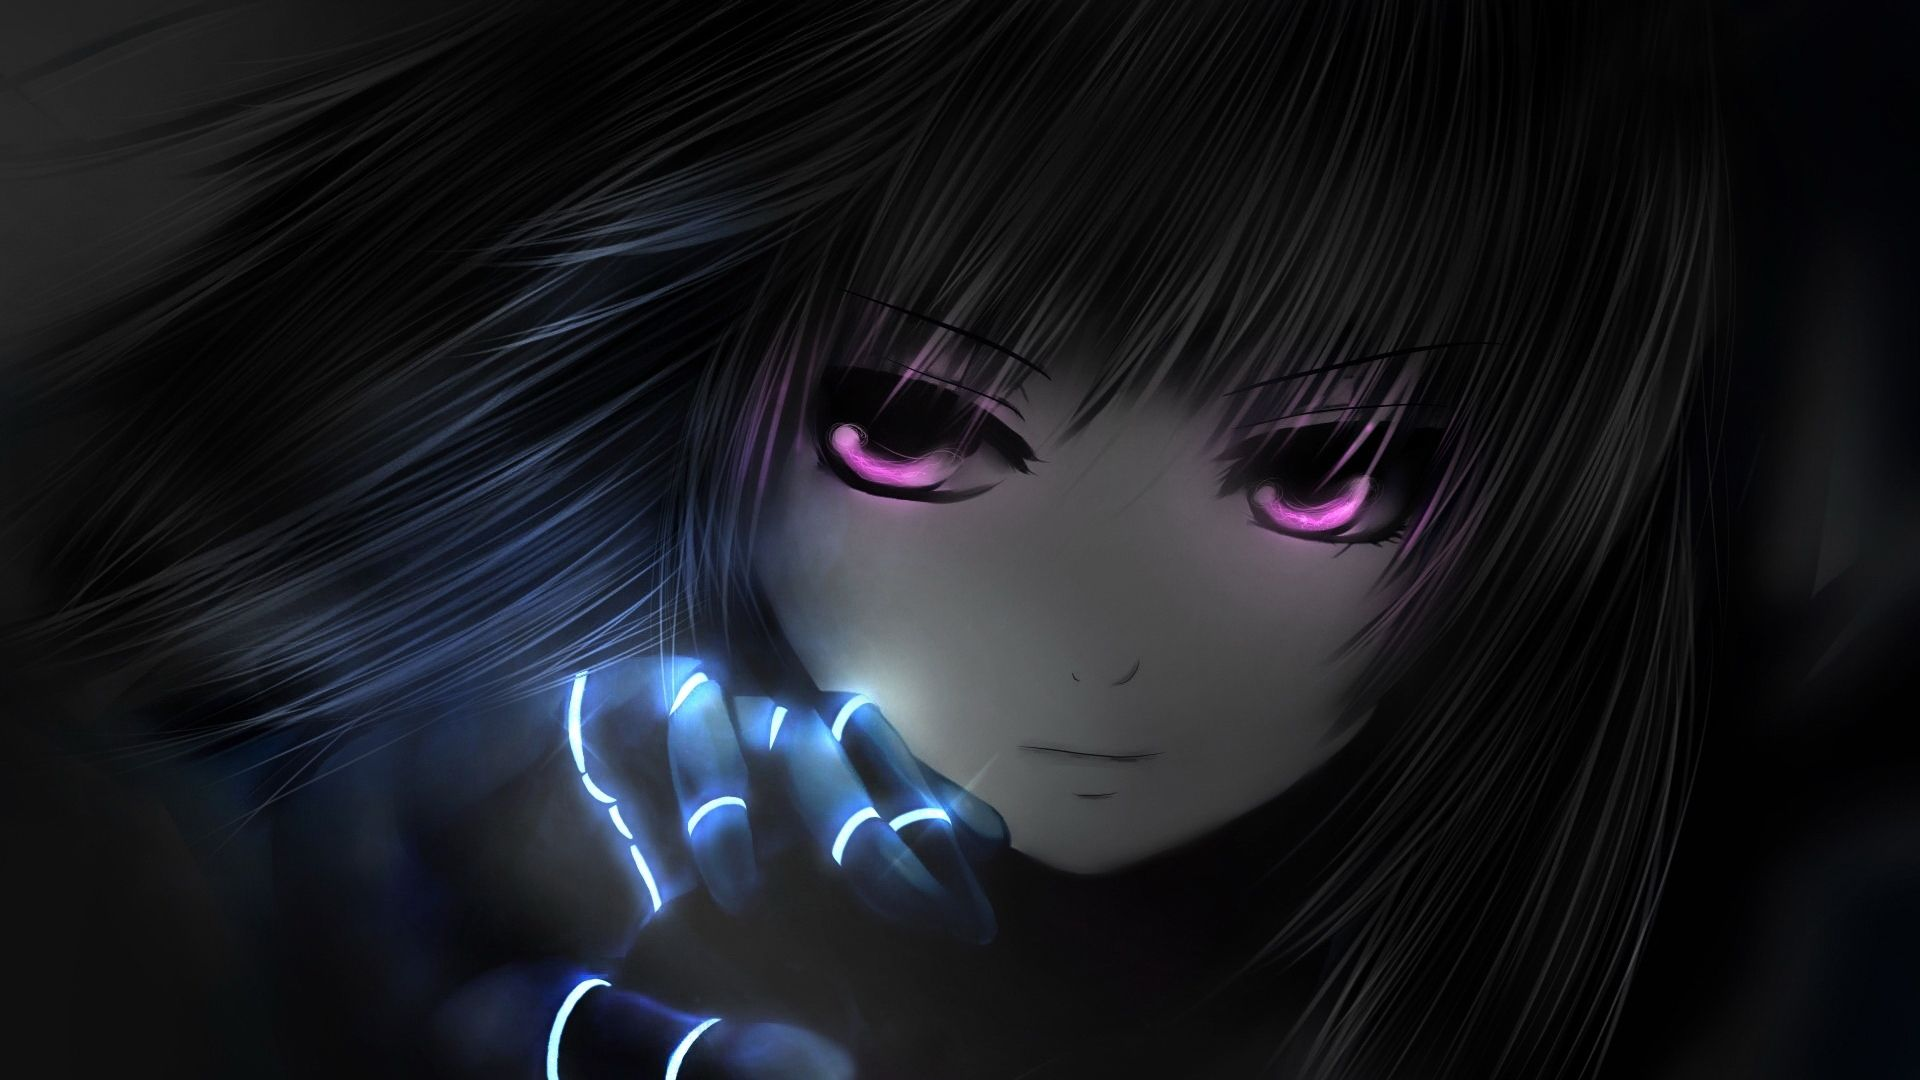 Wallpaper Background Anime Love : papersonal: Dark Anime Wallpaper Anime/Manga Pinterest Dark anime and Anime